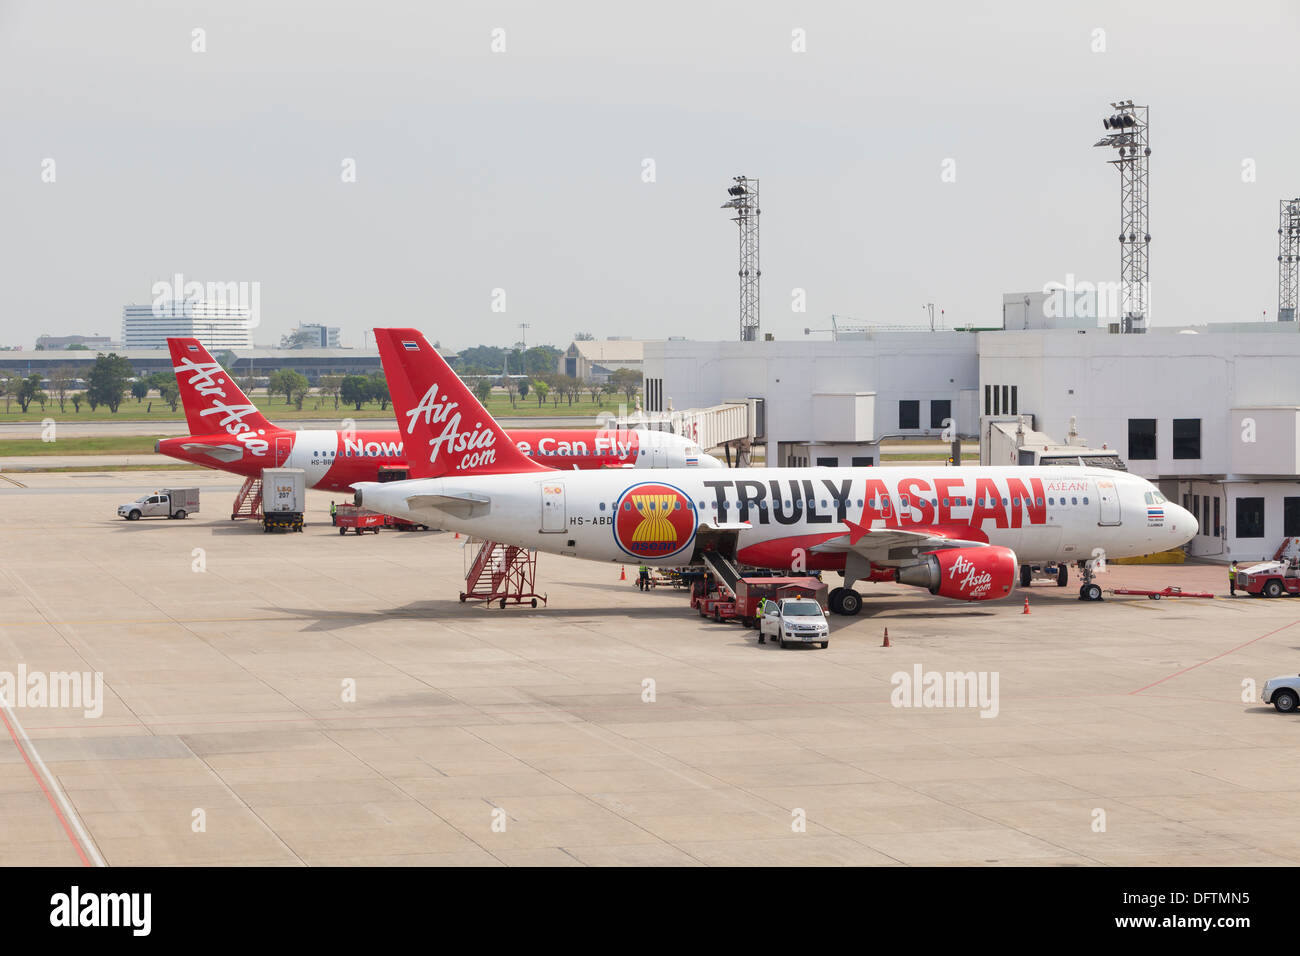 Air Asia airplanes, Thailand - Stock Image